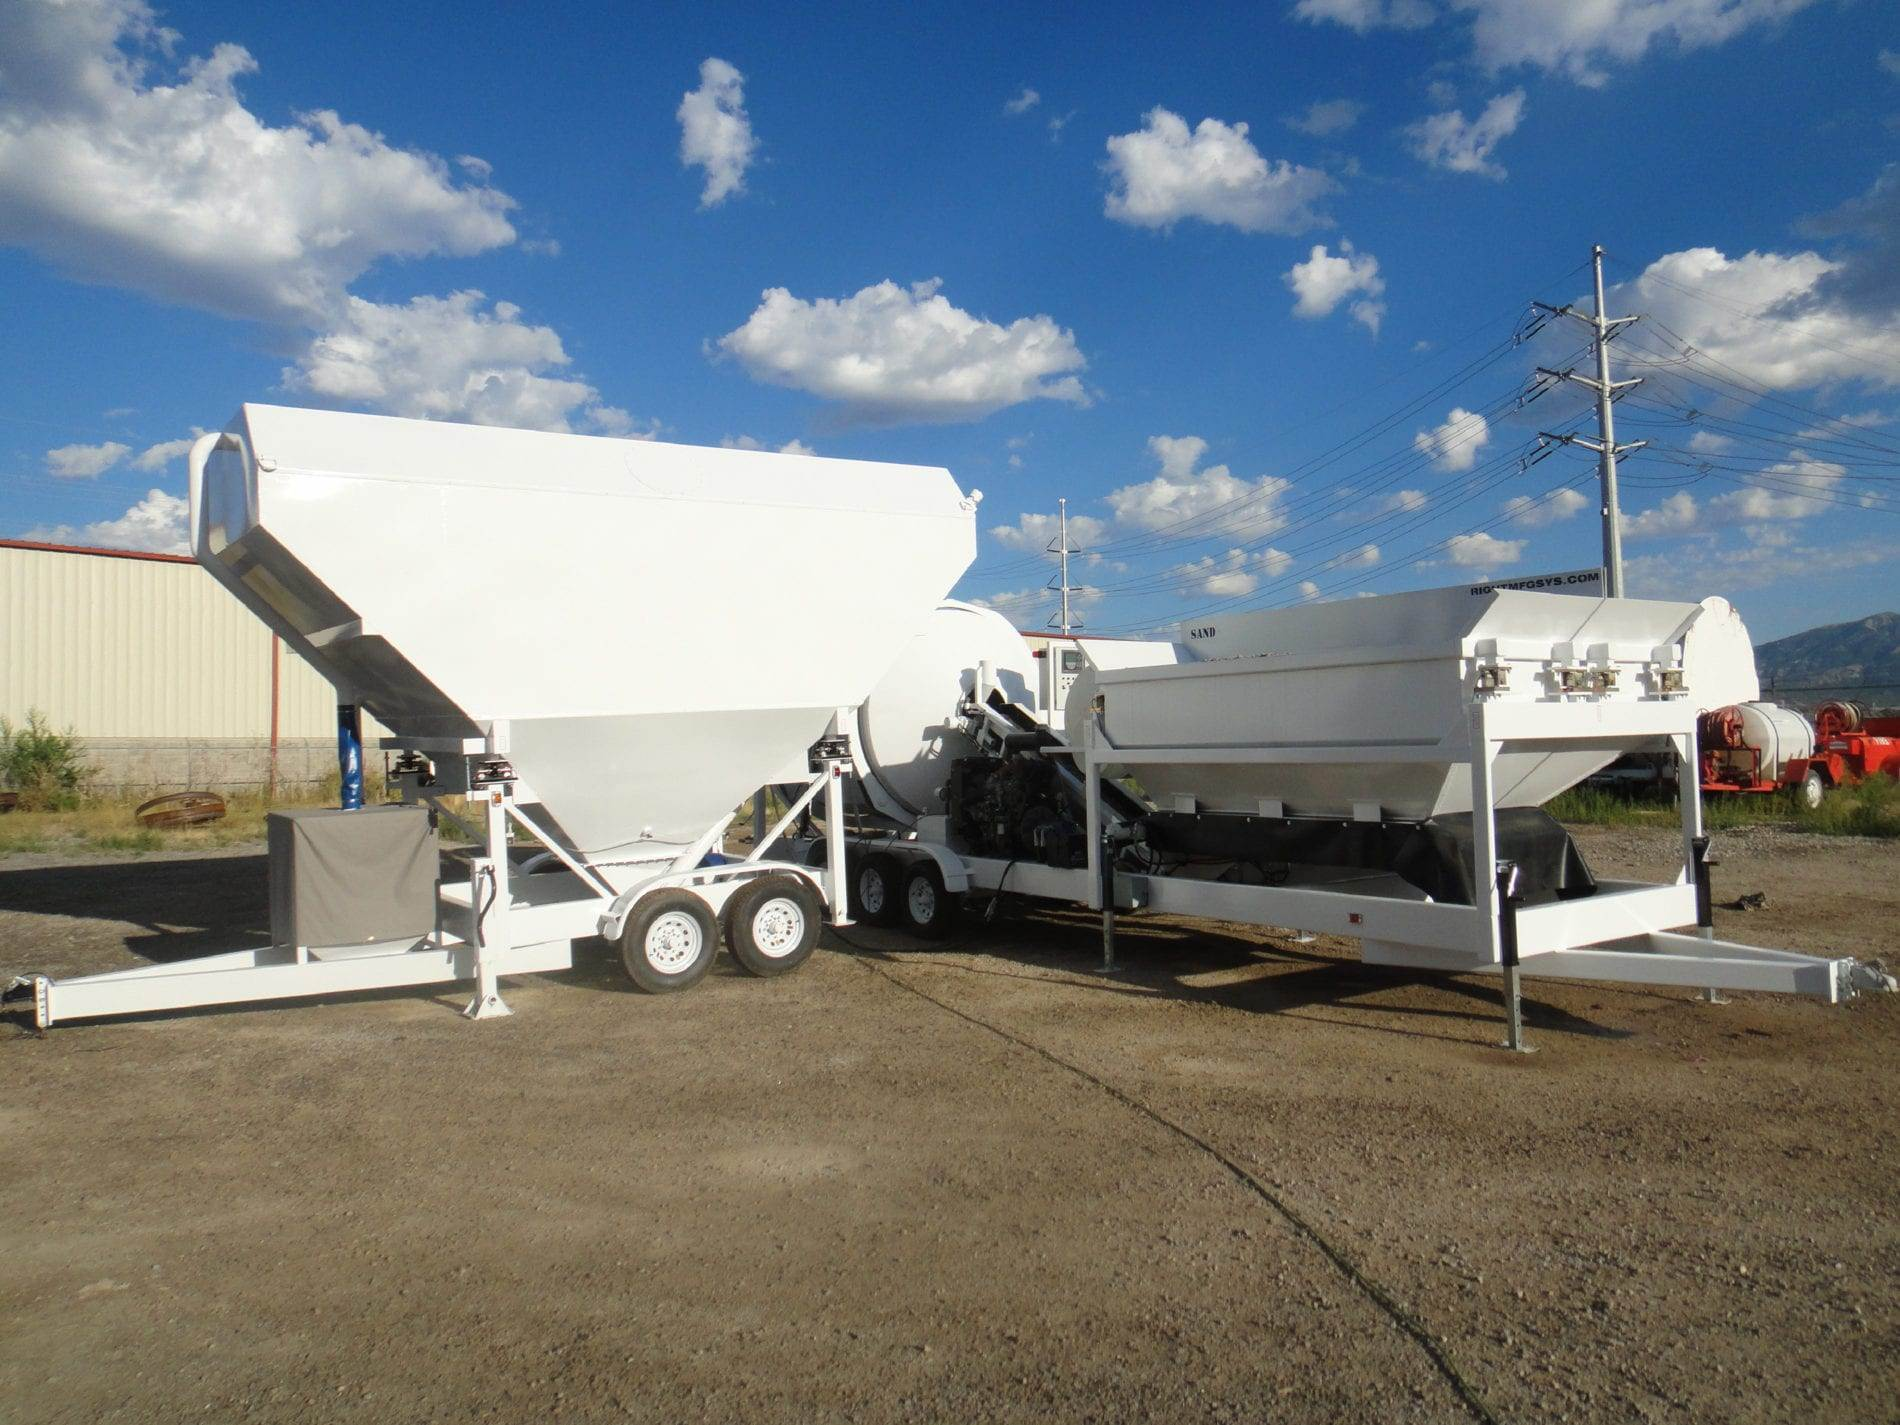 Custom Portable Concrete Mixer Batch Plant EZ 4-10-2 & Portable Cement Silo 7SL-80